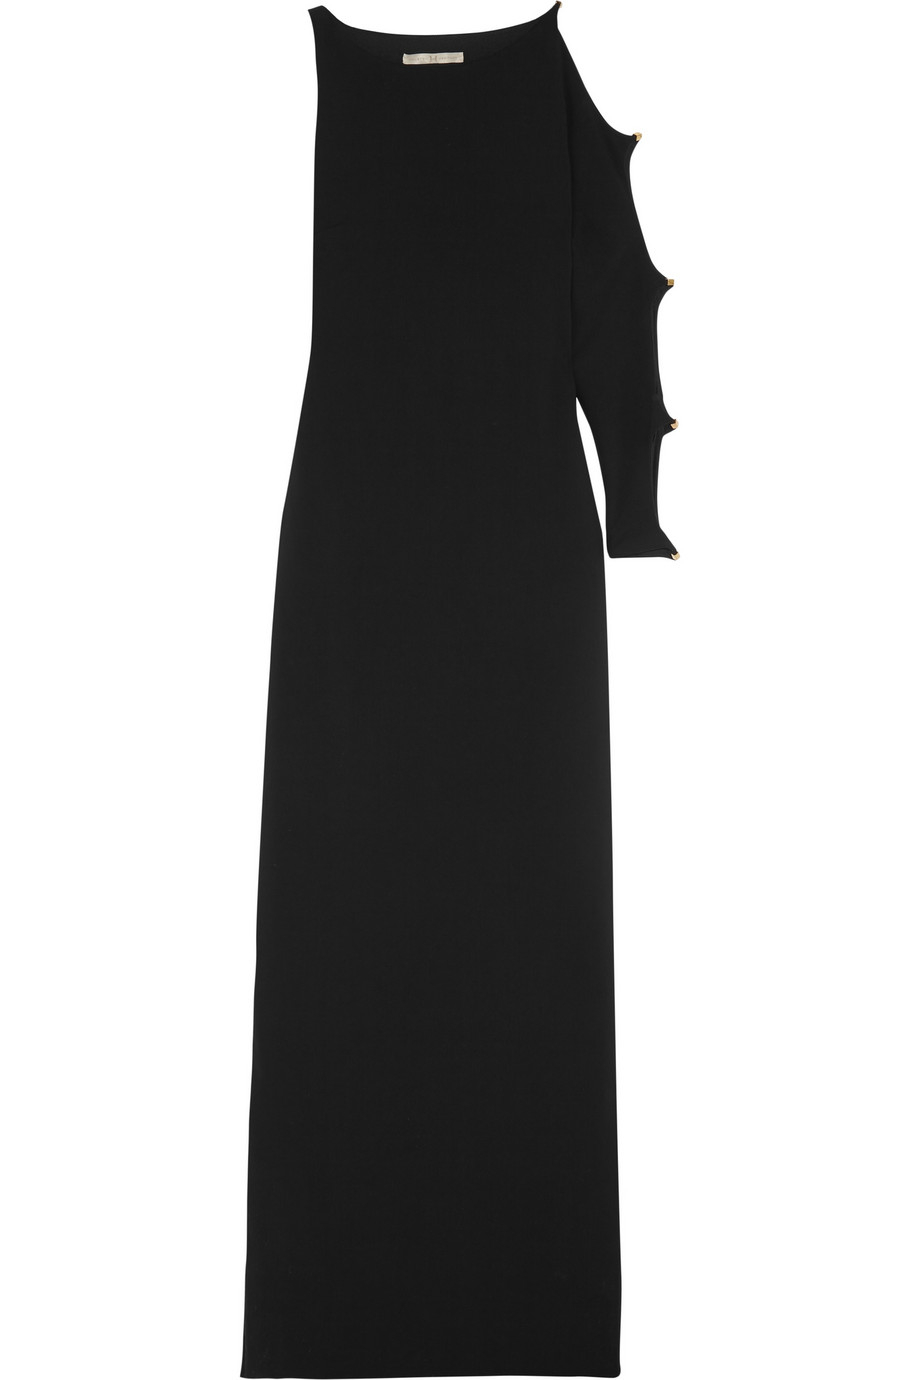 303d180f8bc91 Halston Asymmetric Cutout Jersey-Crepe Gown in Black - Lyst